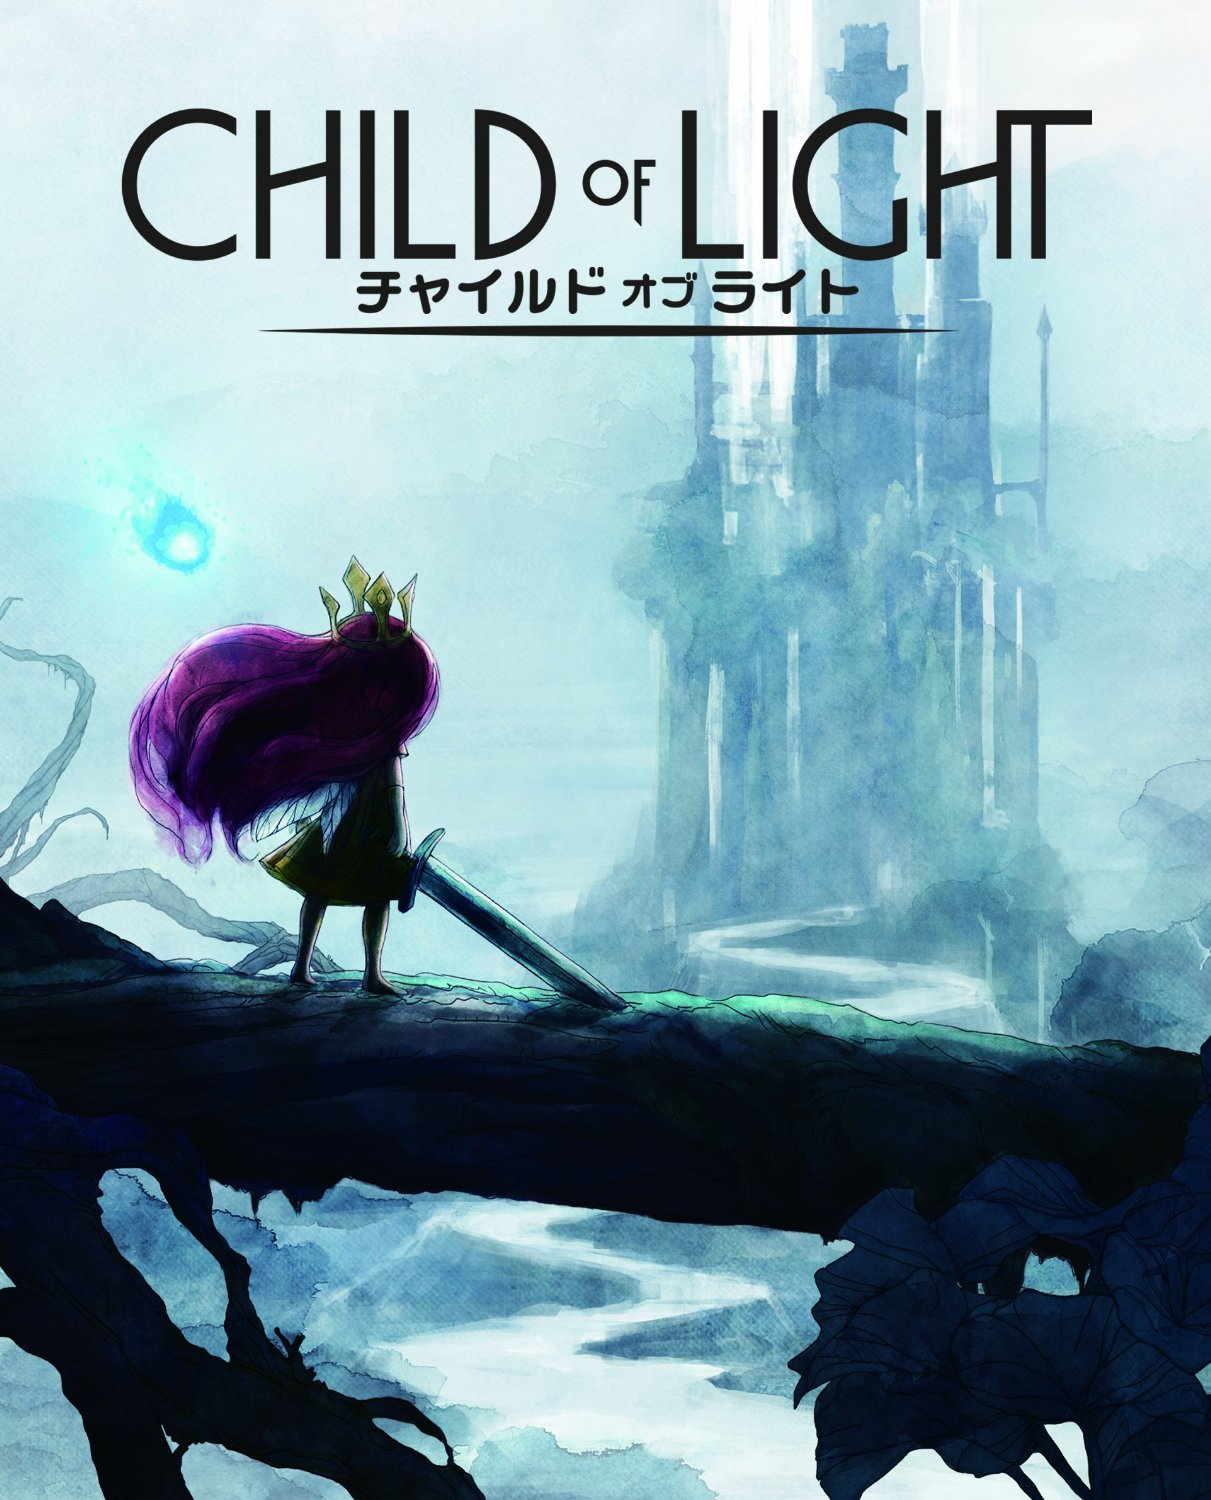 Child of Light PS4 games